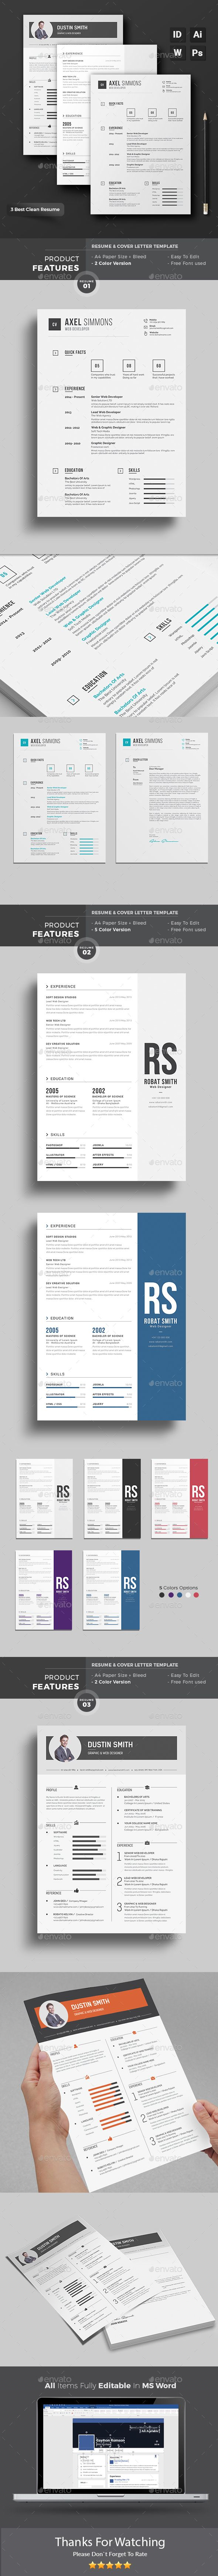 excellent resume formats%0A Houston Map Jersey Village